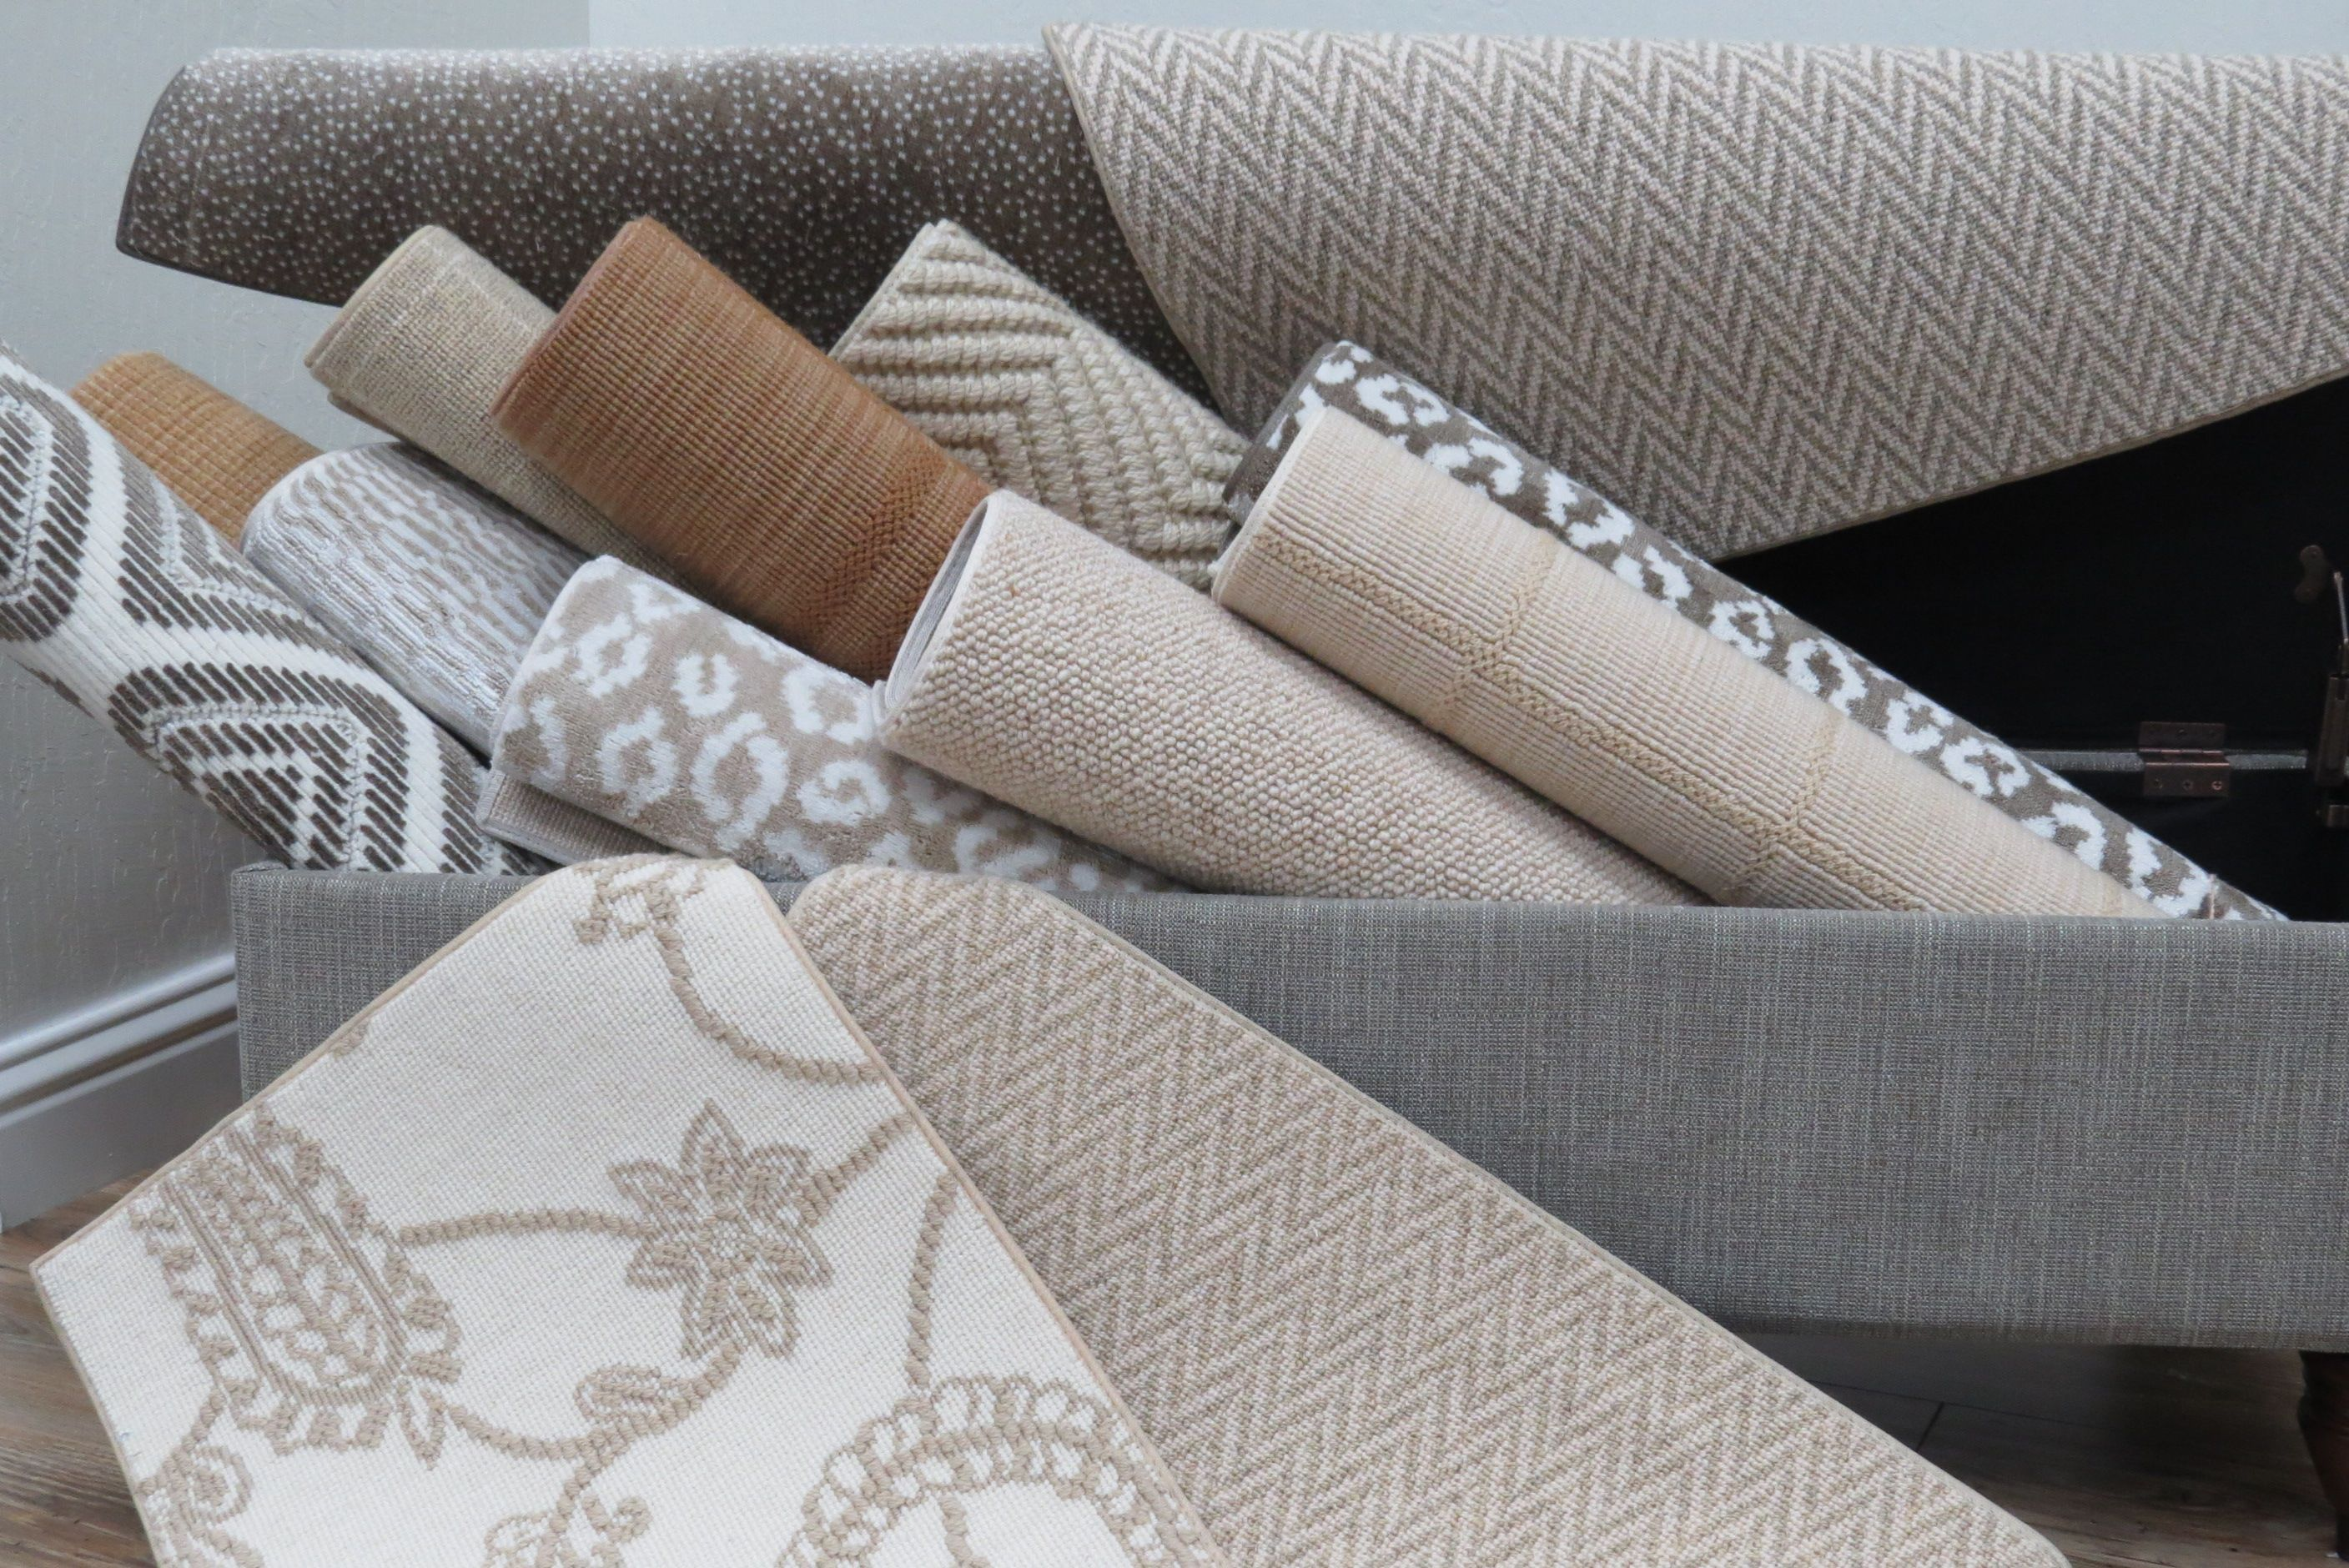 Bellbridge Carpets featured in a beautiful of neutral tones ranging from subtle beige to rich